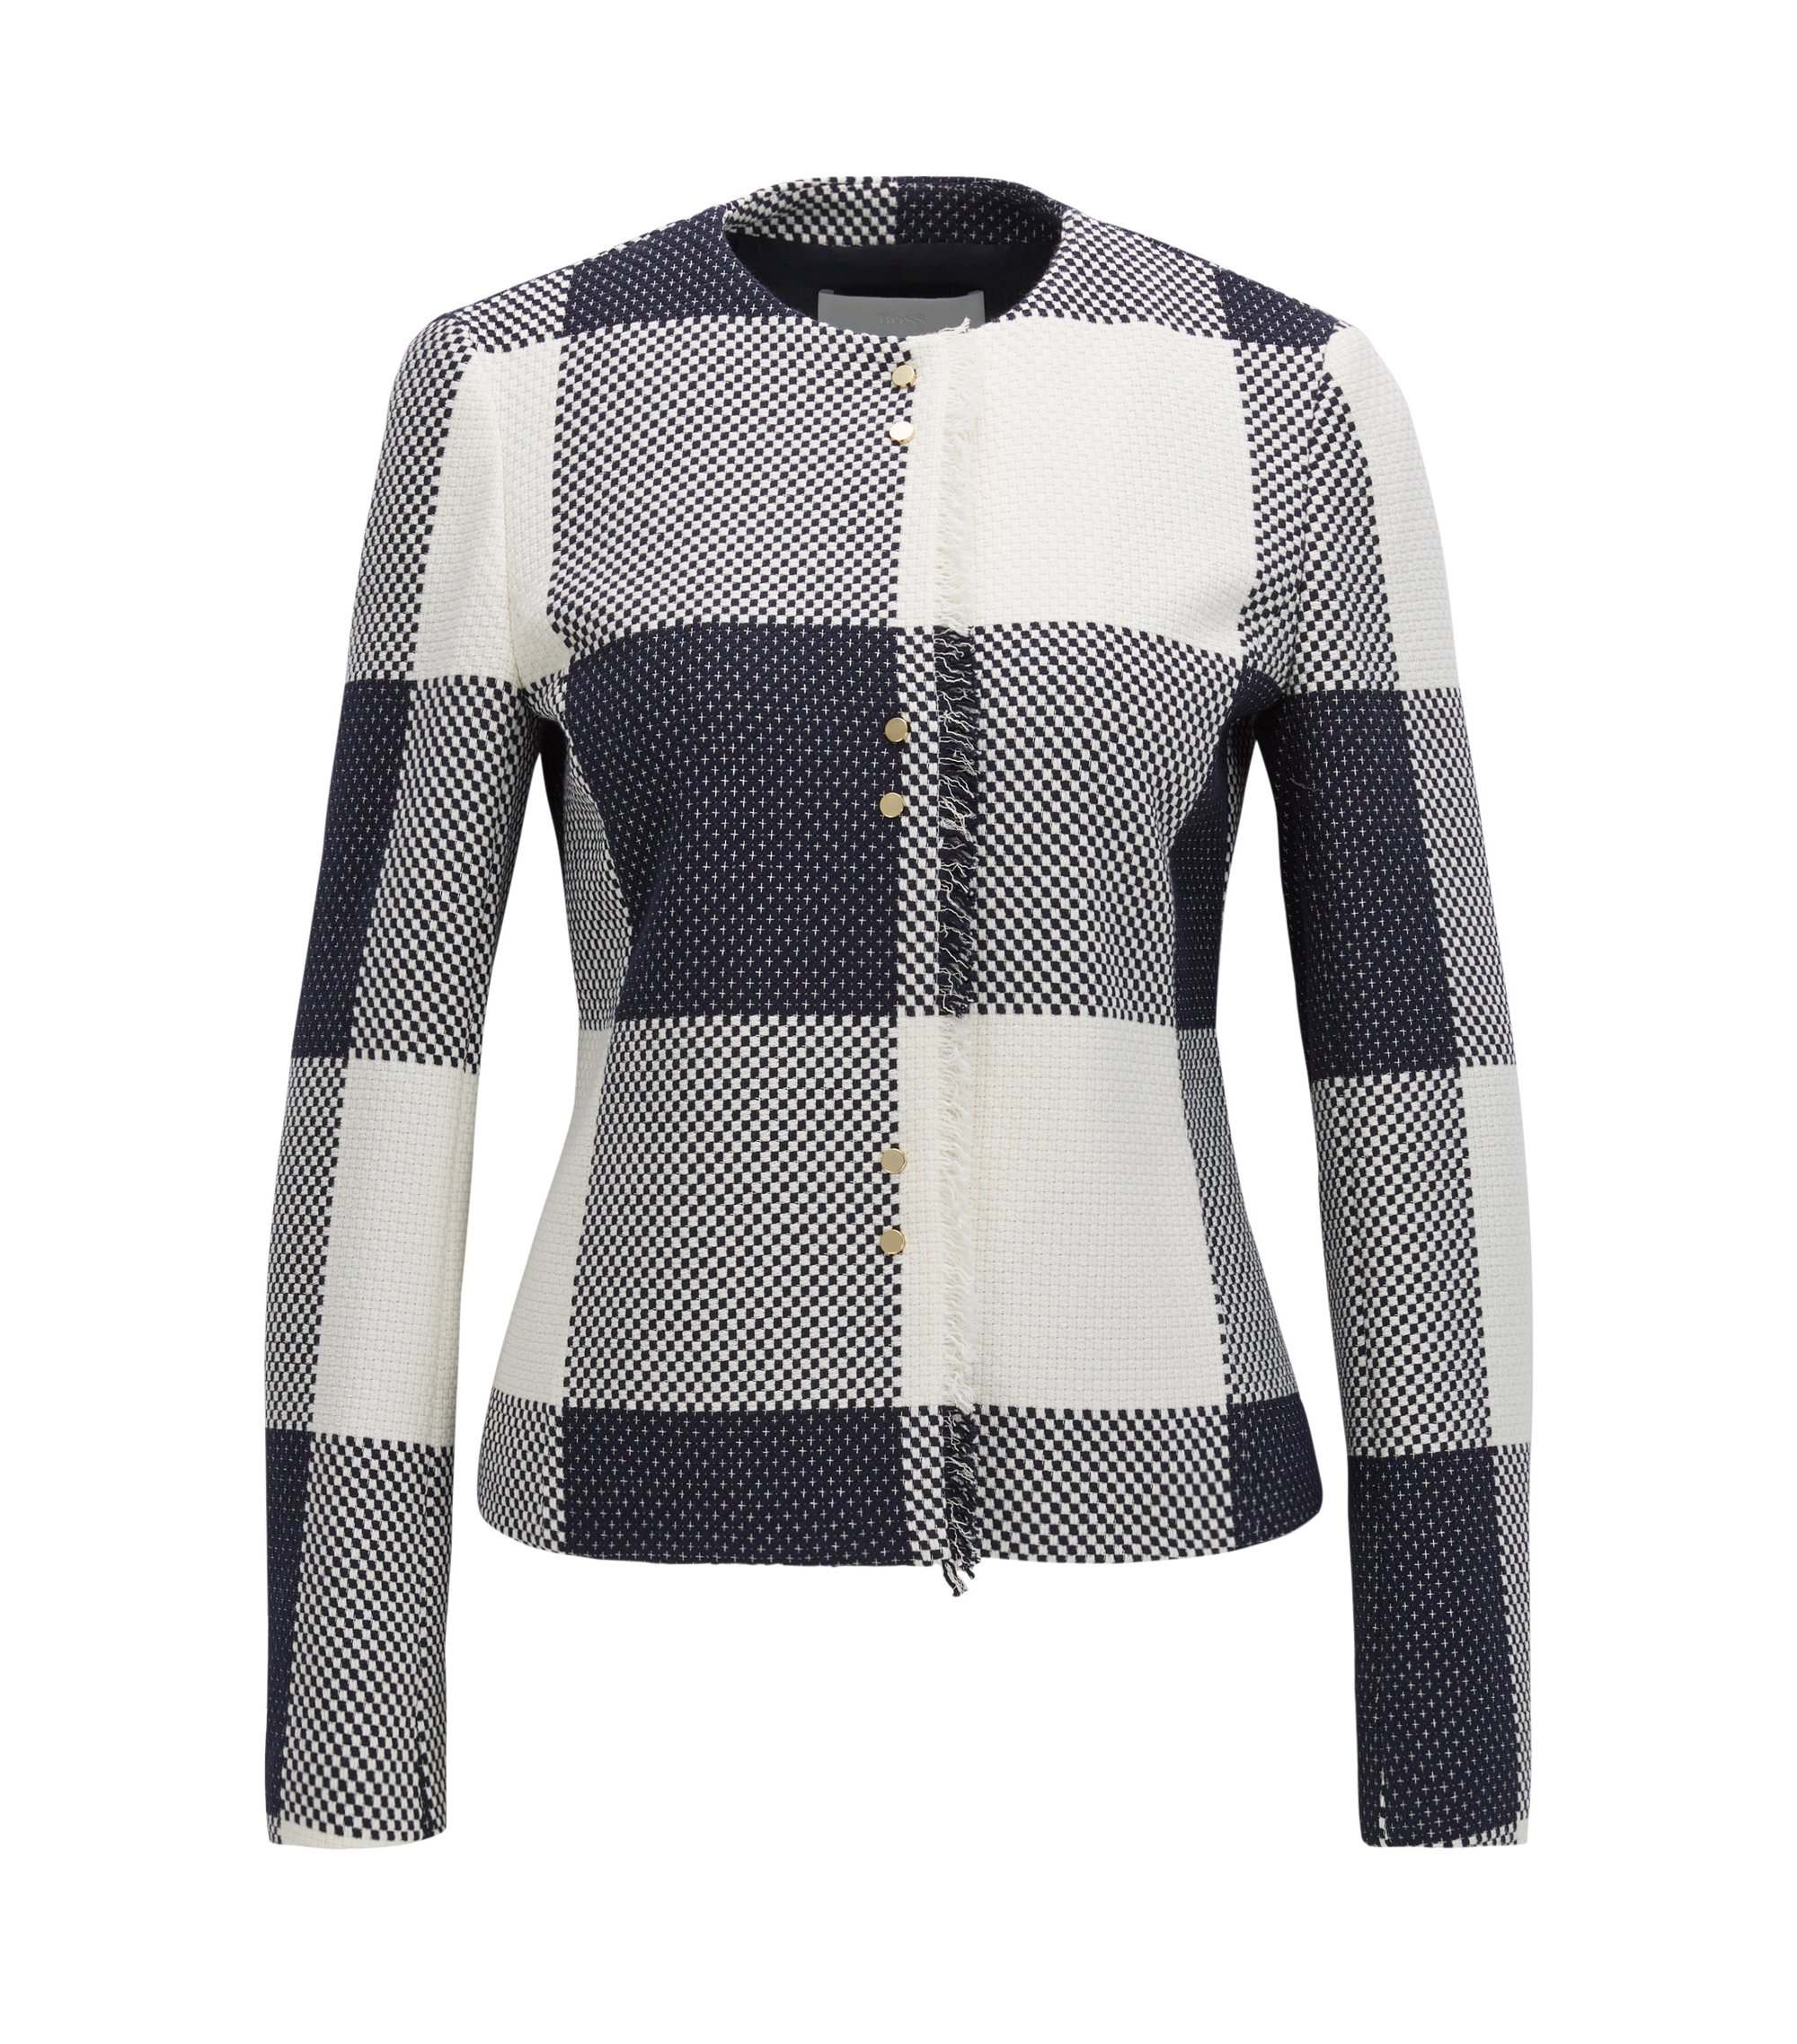 Checked-cotton jacket with fringing, Patterned